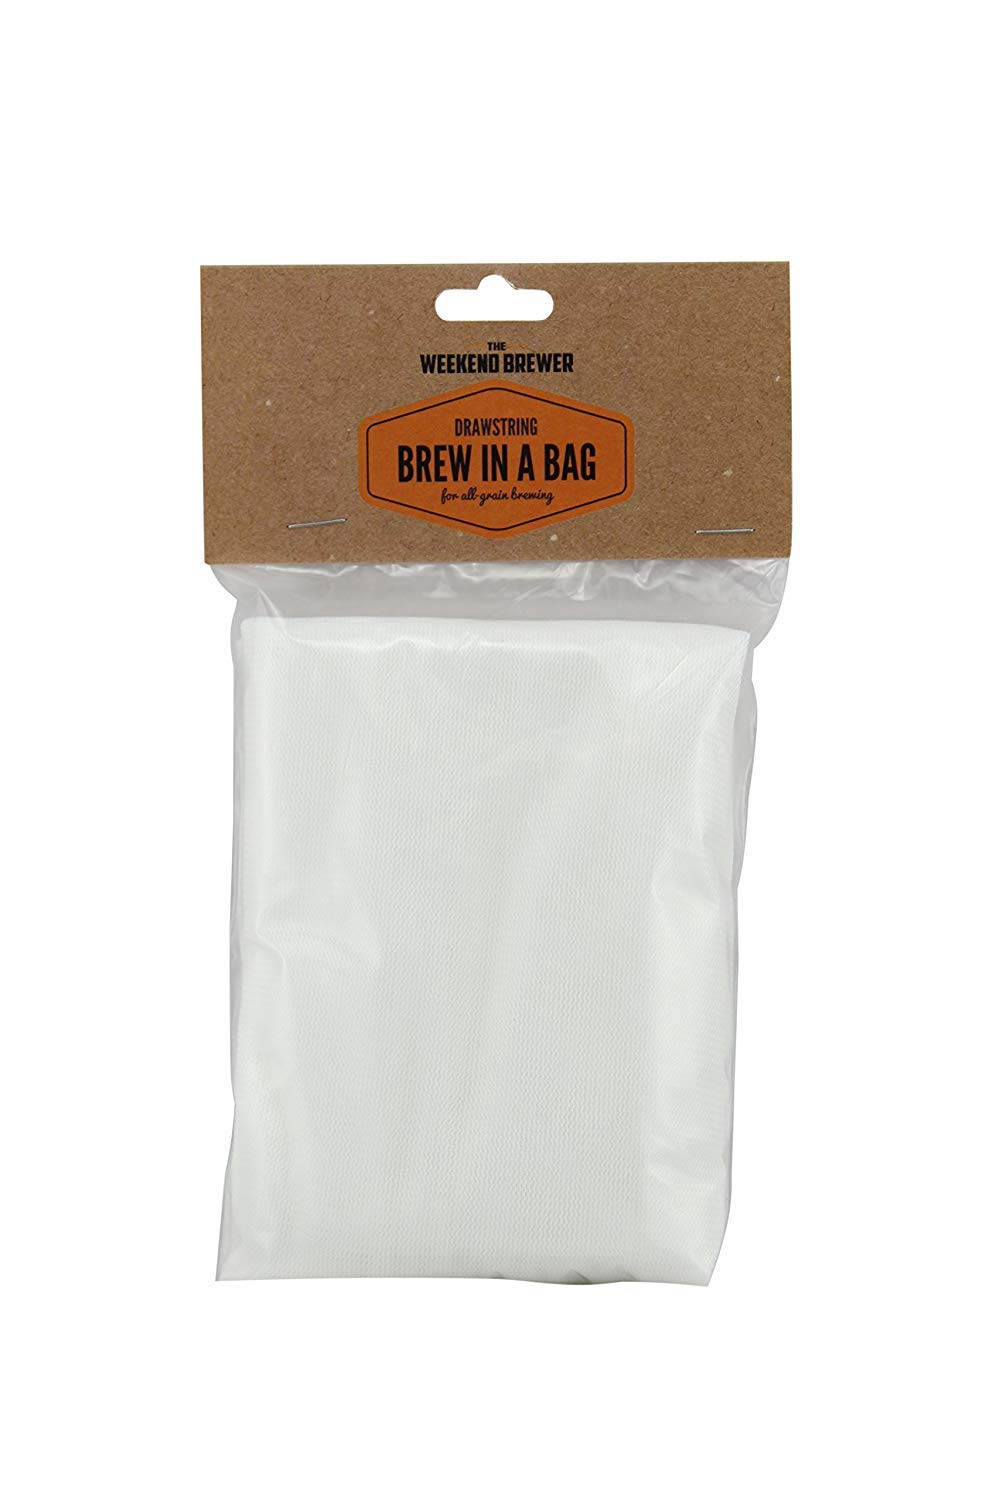 Extra Large (26'' x 22'') Reusable Drawstring Straining Brew in a Bag by The Weekend Brewer